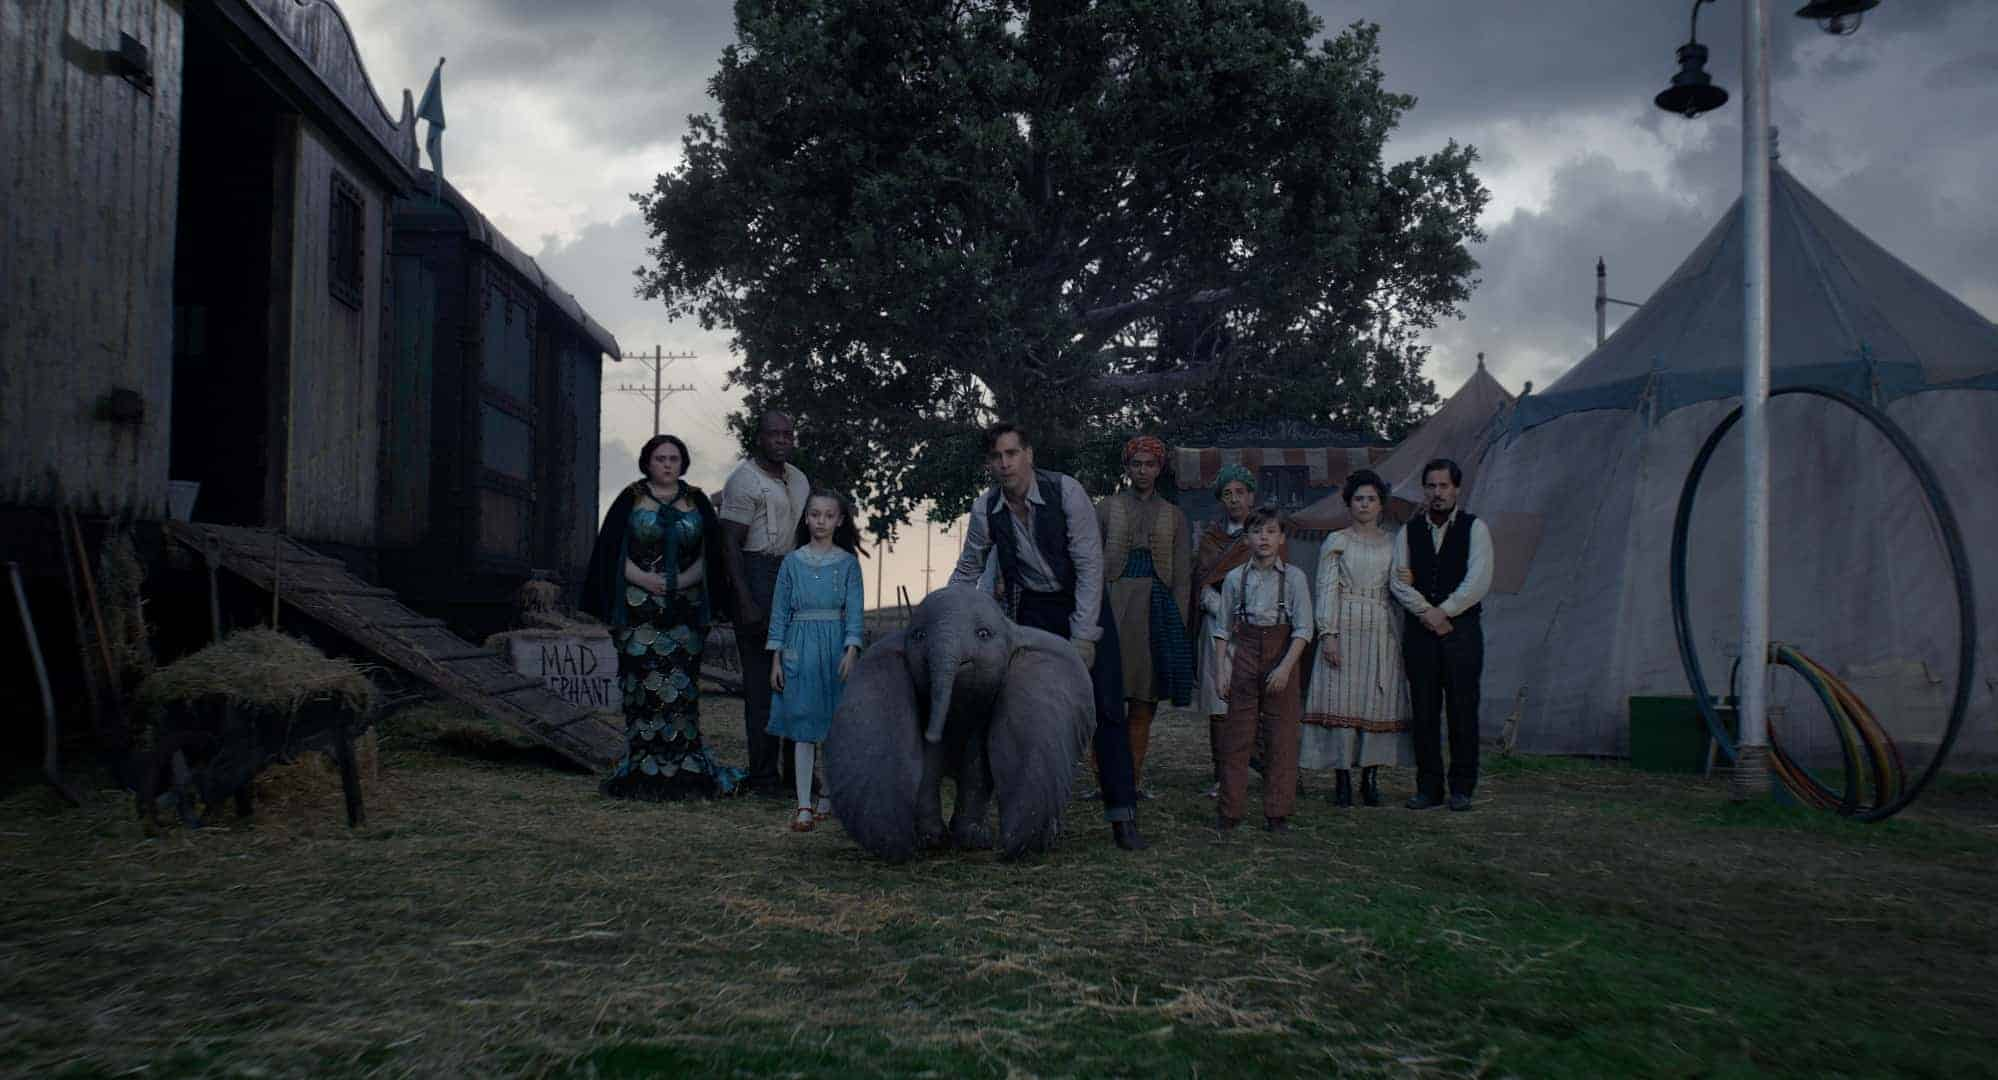 "FAMILY TIES – In Tim Burton's all-new, live-action reimagining of ""Dumbo,"" Holt Farrier (Colin Farrell), with the help of his children Milly (Nico Parker) and Joe (Finley Hobbins), is called on to take care of a newborn elephant whose oversized ears make him a laughingstock in an already struggling circus. Holt's circus family includes Miss Atlantis (Sharon Rooney), Rongo (DeObia Oparei), Pramesh's nephew (Ragevan Vasan), Pramesh Singh (Roshan Seth), Catherine the Greater (Zenaida Alcalde) and Ivan the Wonderful (Miguel Muñoz). ""Dumbo"" opens in theaters on March 29, 2019. © 2018 Disney Enterprises, Inc. All Rights Reserved."